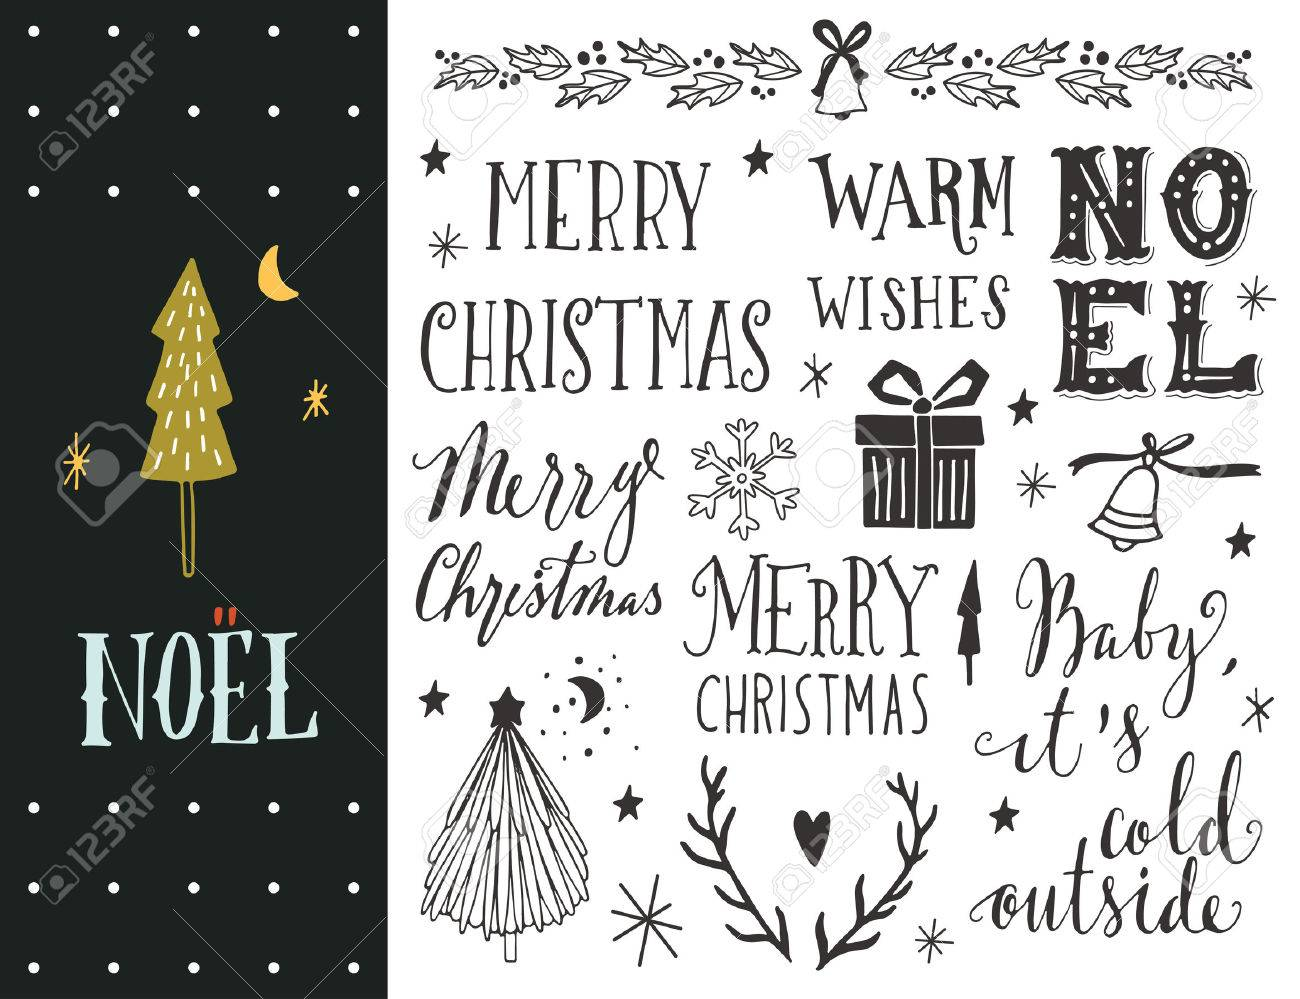 Noel hand drawn christmas holiday collection with lettering noel hand drawn christmas holiday collection with lettering and decoration elements for greeting cards stopboris Gallery